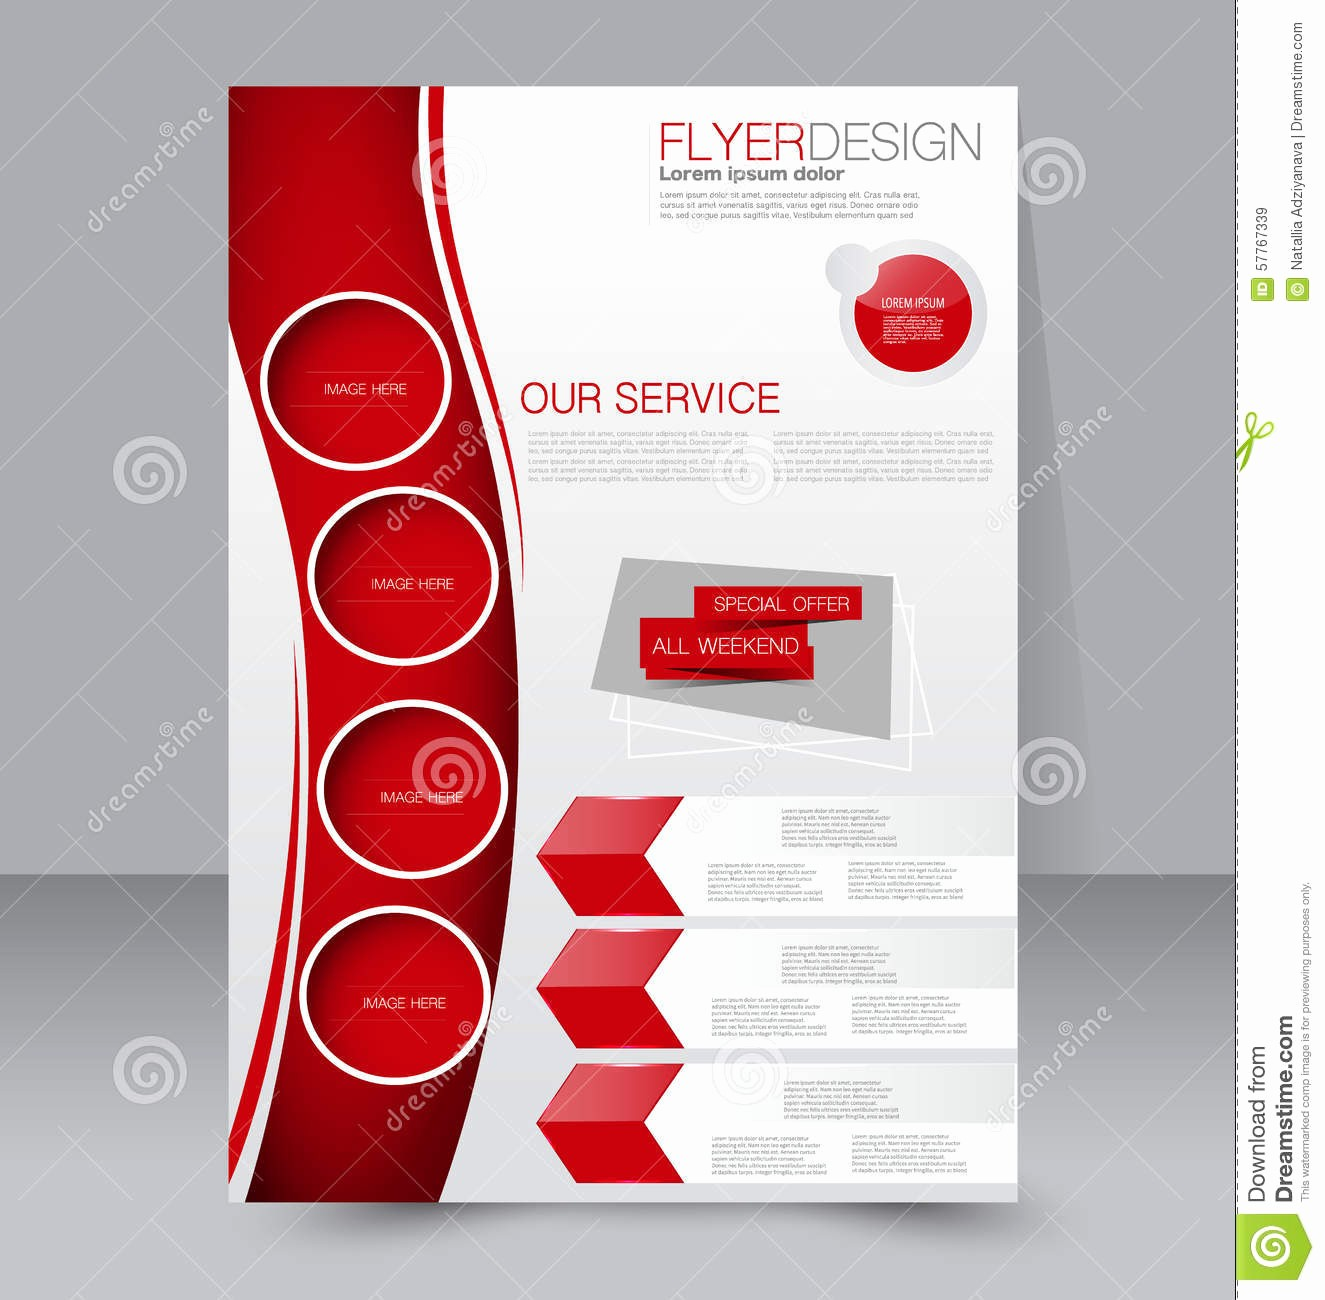 School Brochure Template Free Download Luxury Flyer Template Business Brochure Editable Poster Design